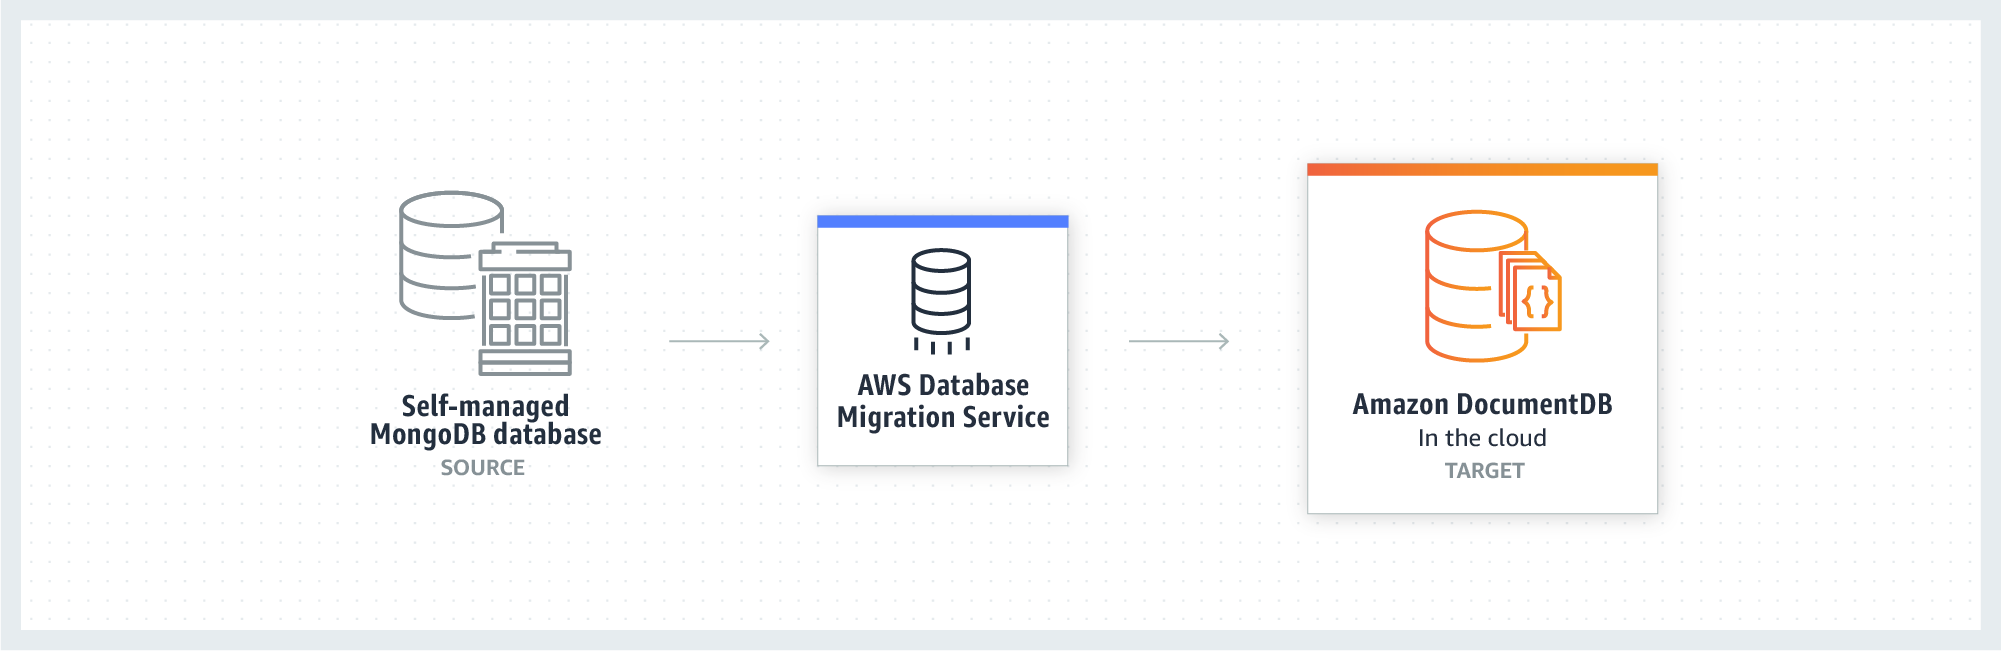 How to migrate to Amazon DocumentDB